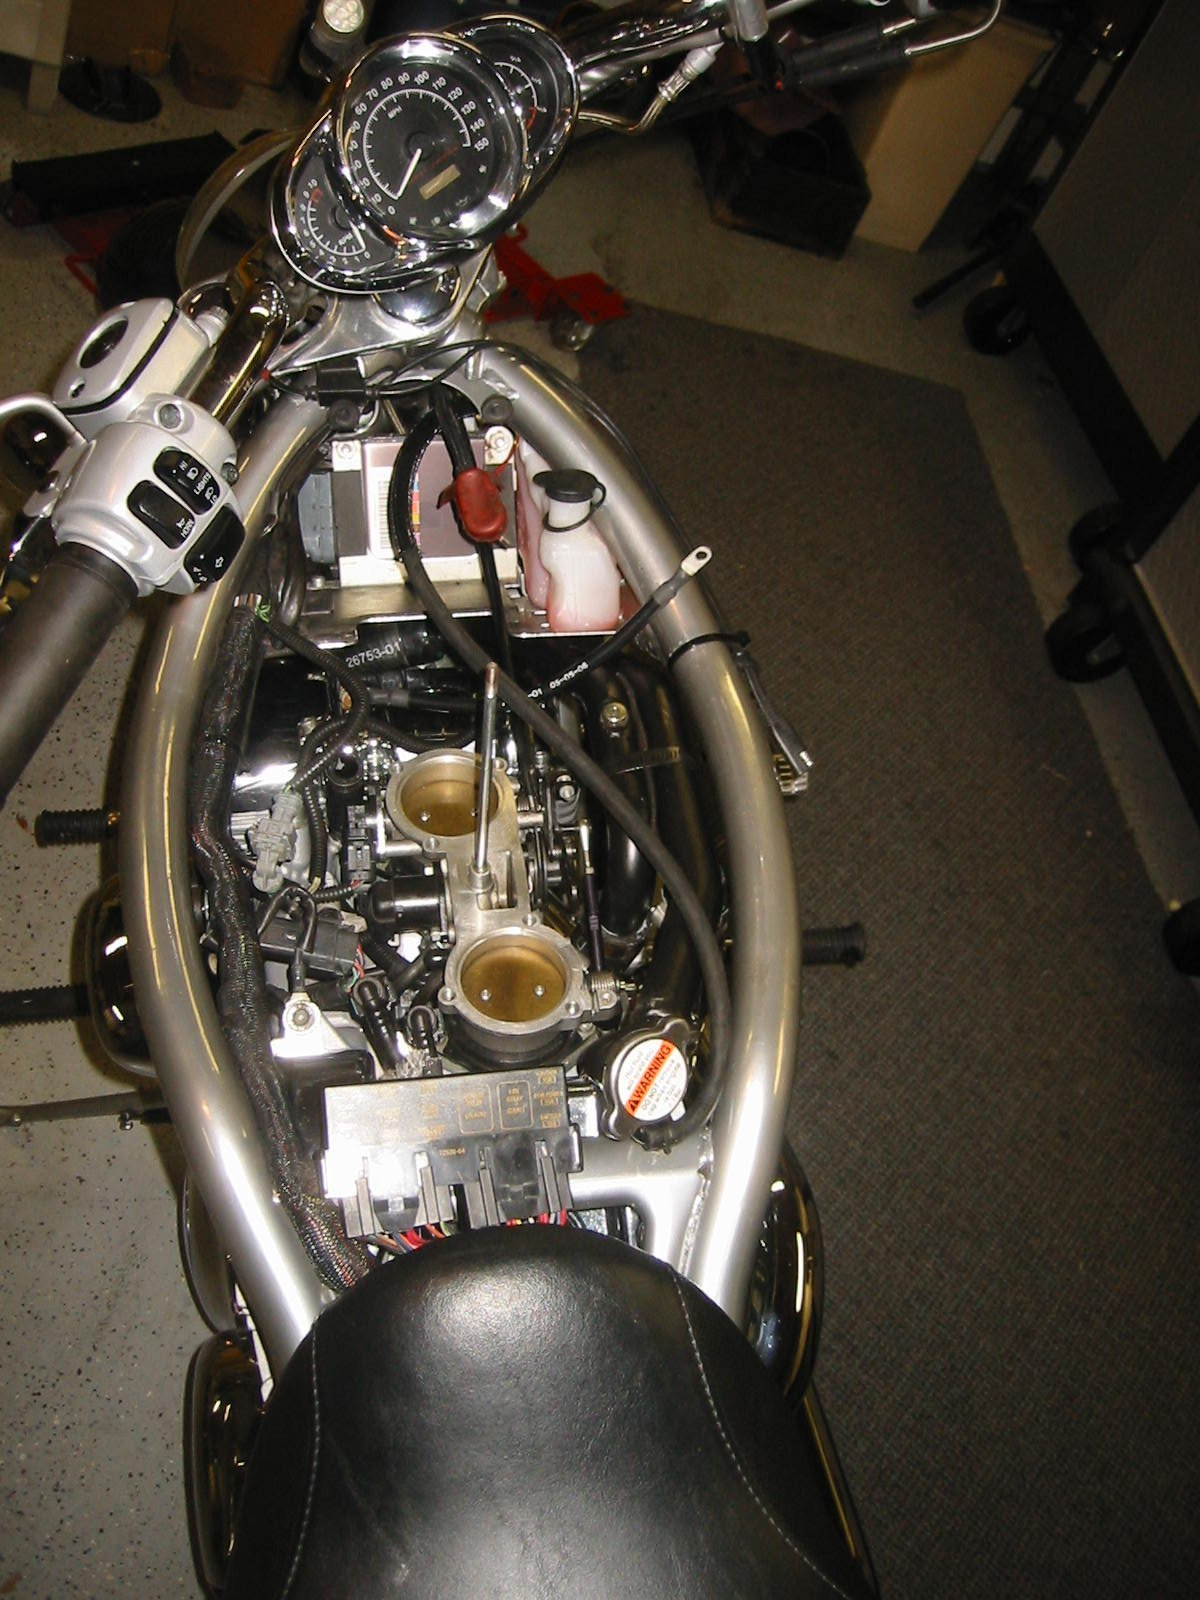 Harley Davidson Fuse Box Location Wiring Library On A Report This Image